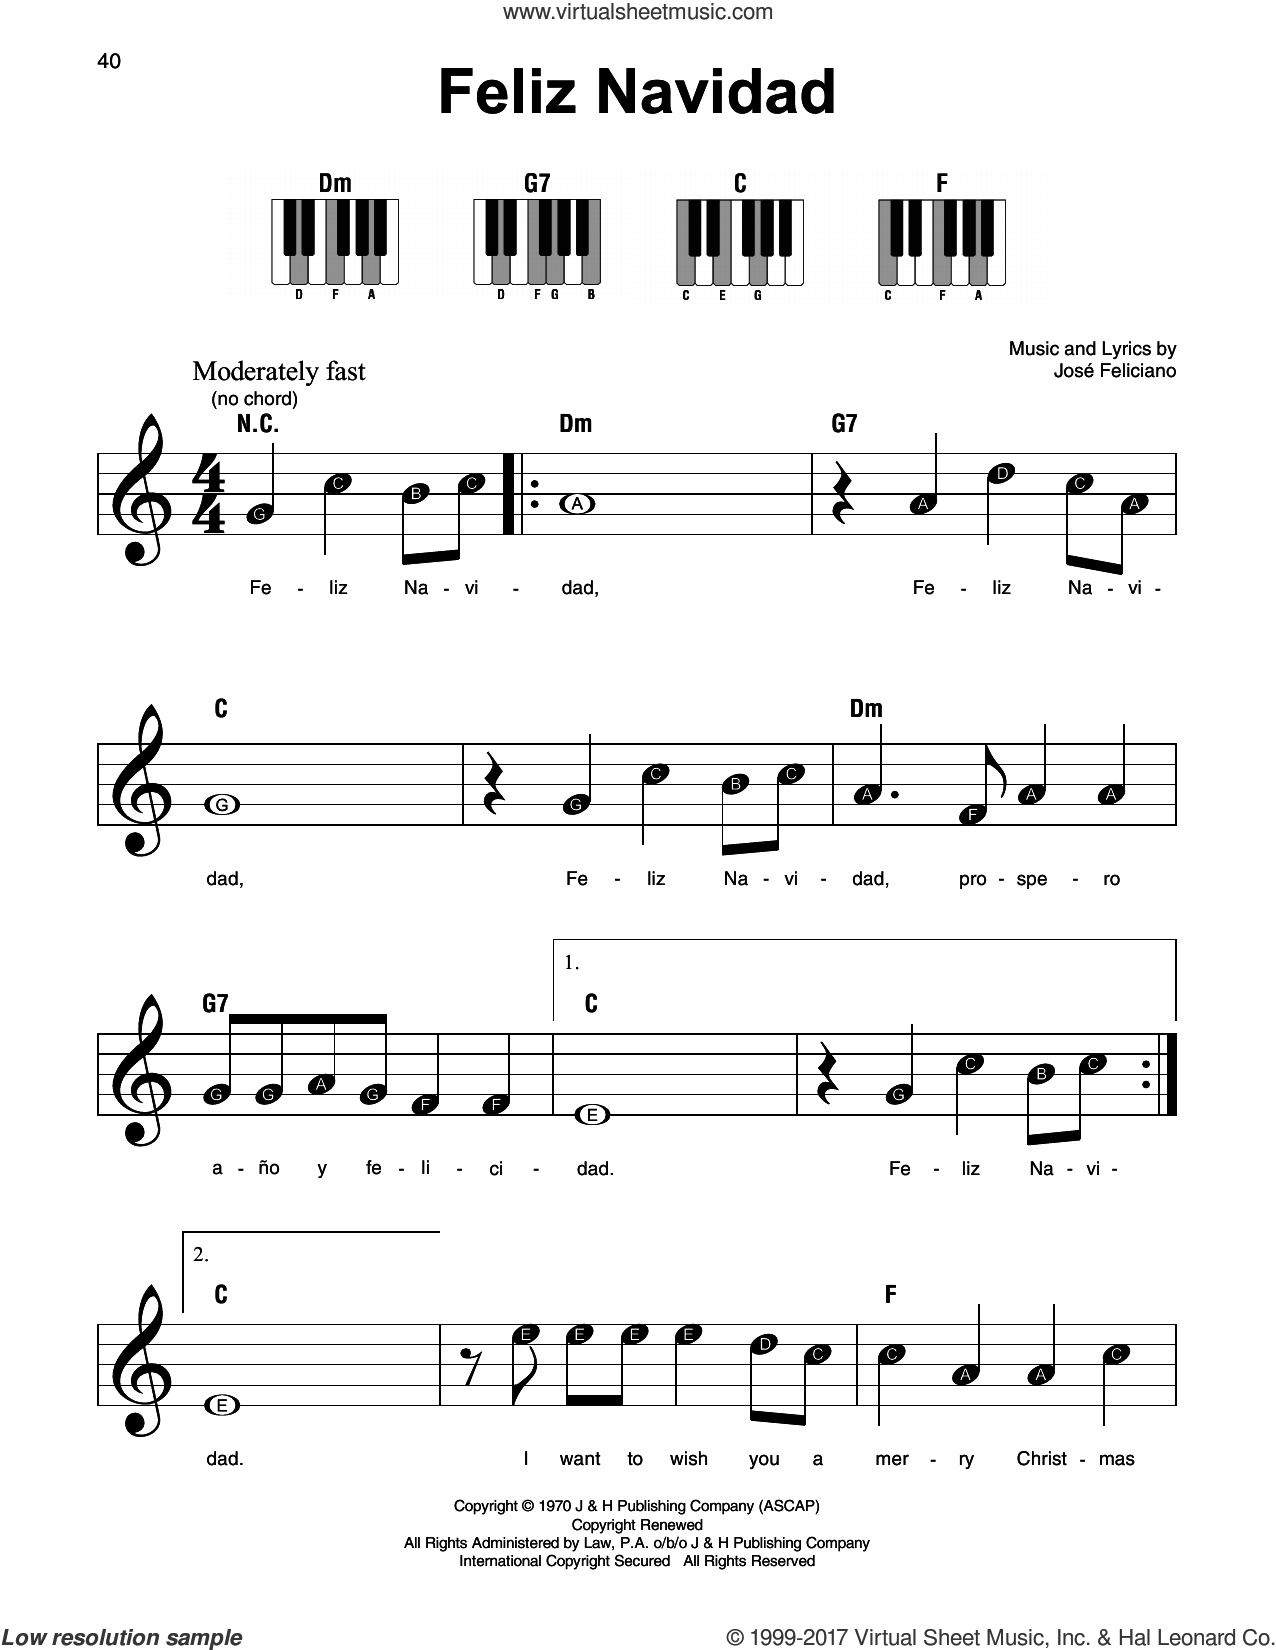 Feliciano - Feliz Navidad sheet music for piano solo v2 #pianomusic